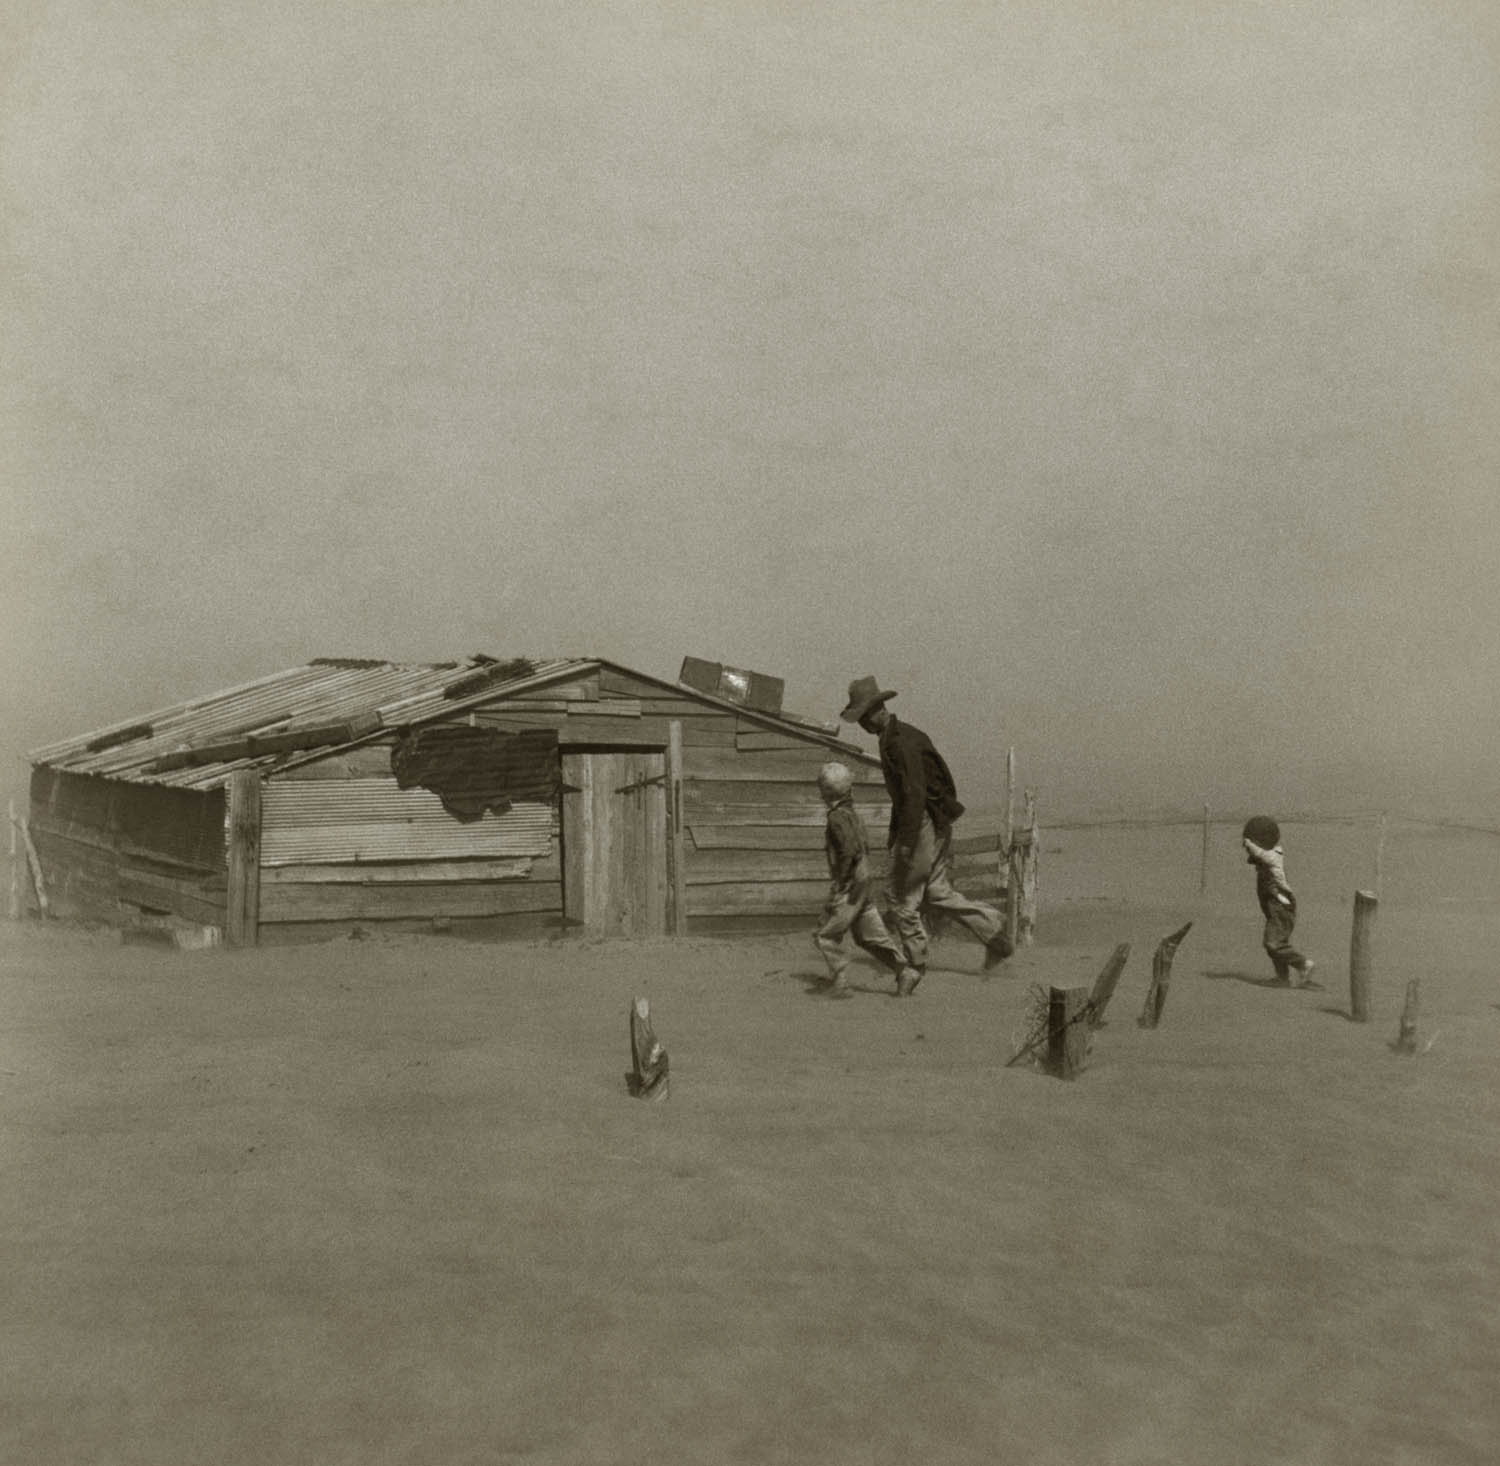 The Dust Bowl was a period of severe dust storms during the 1930s, also referred to as the Dirty Thirties